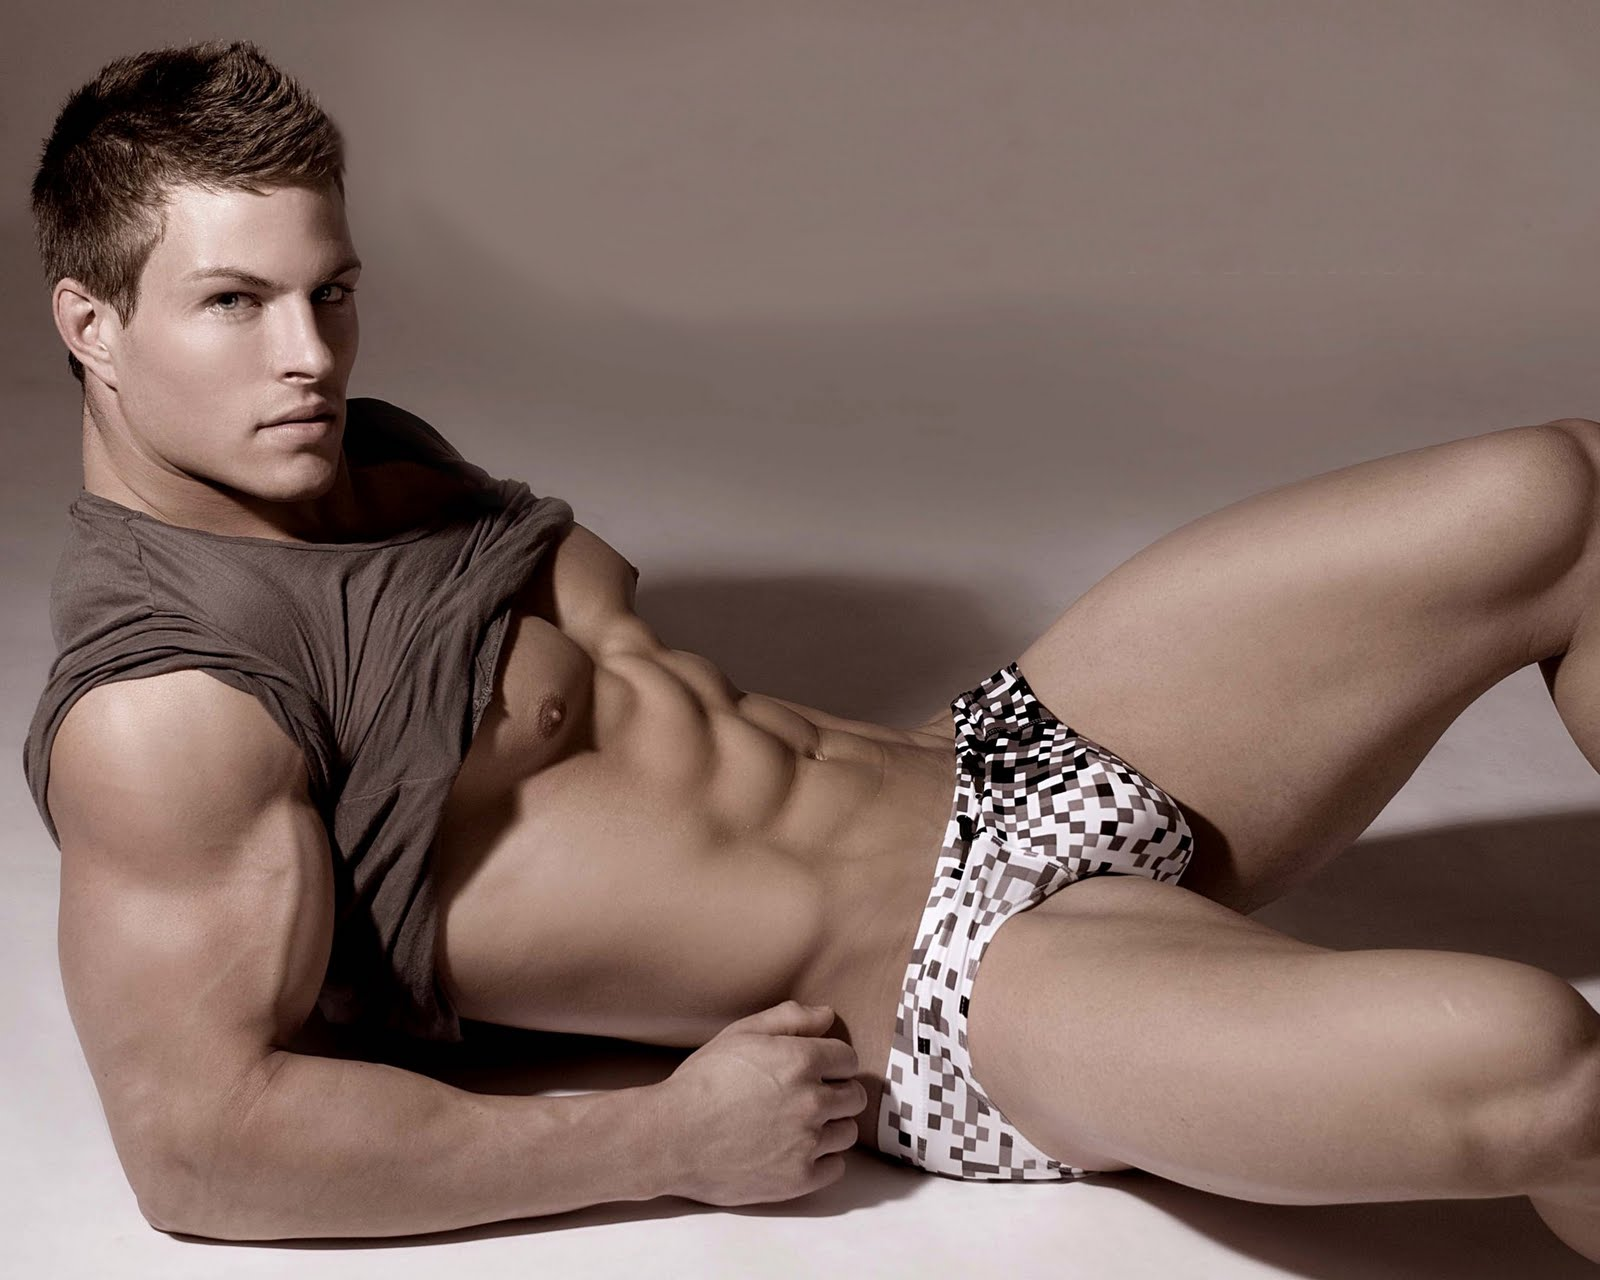 HUNK OF THE DAY – STEFAN GATT